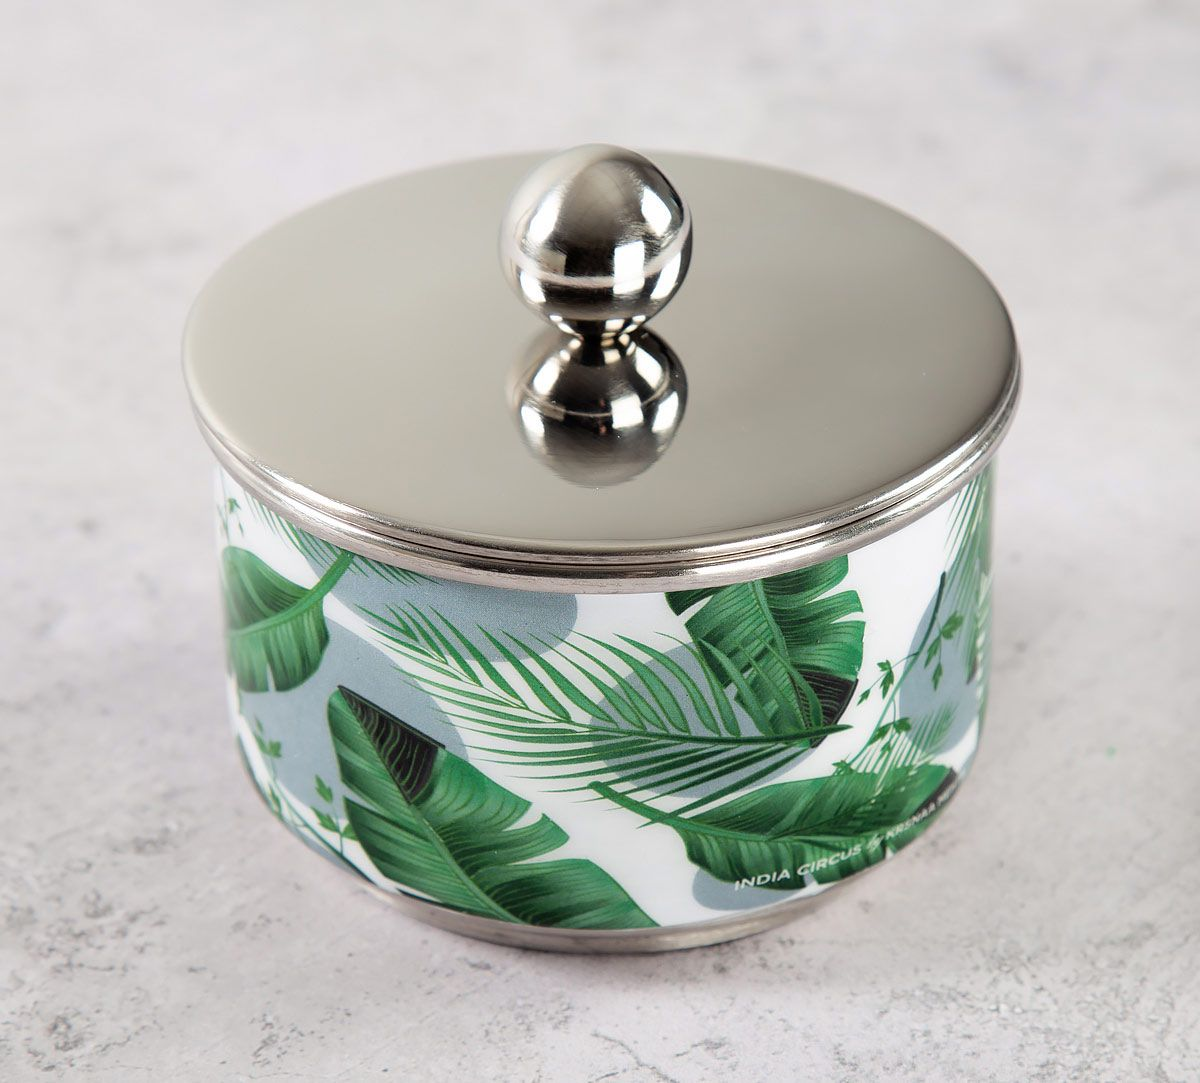 India Circus Tropical Leaves Steel Bowl with Lid